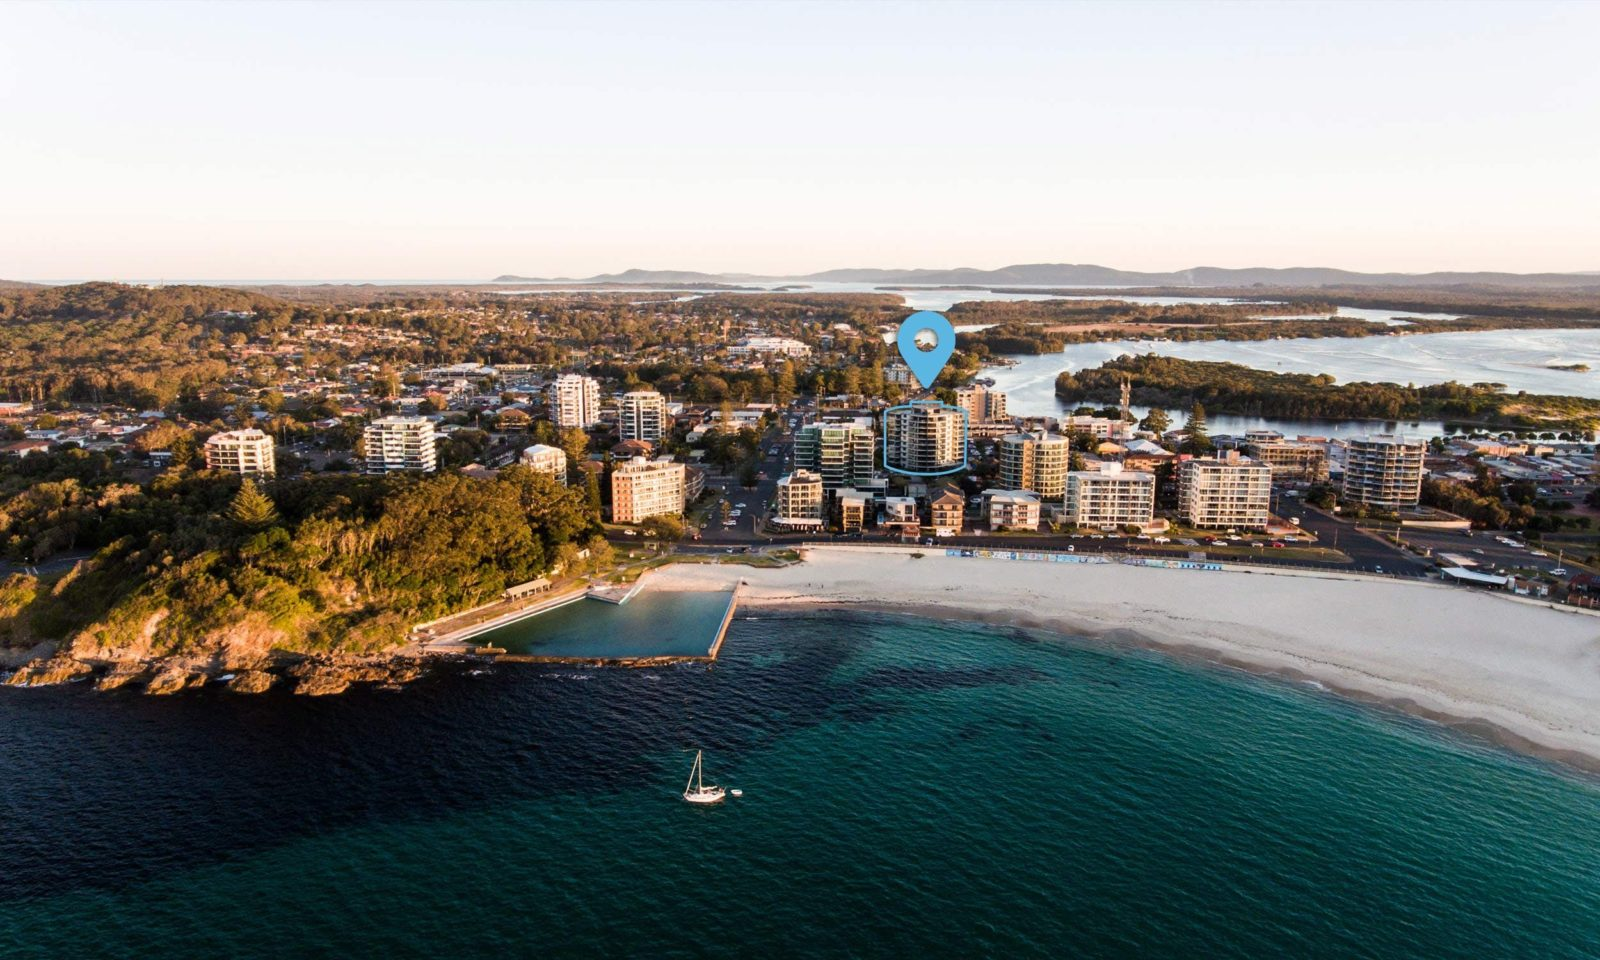 Sevan apartments is highlighted in the heart of Forster